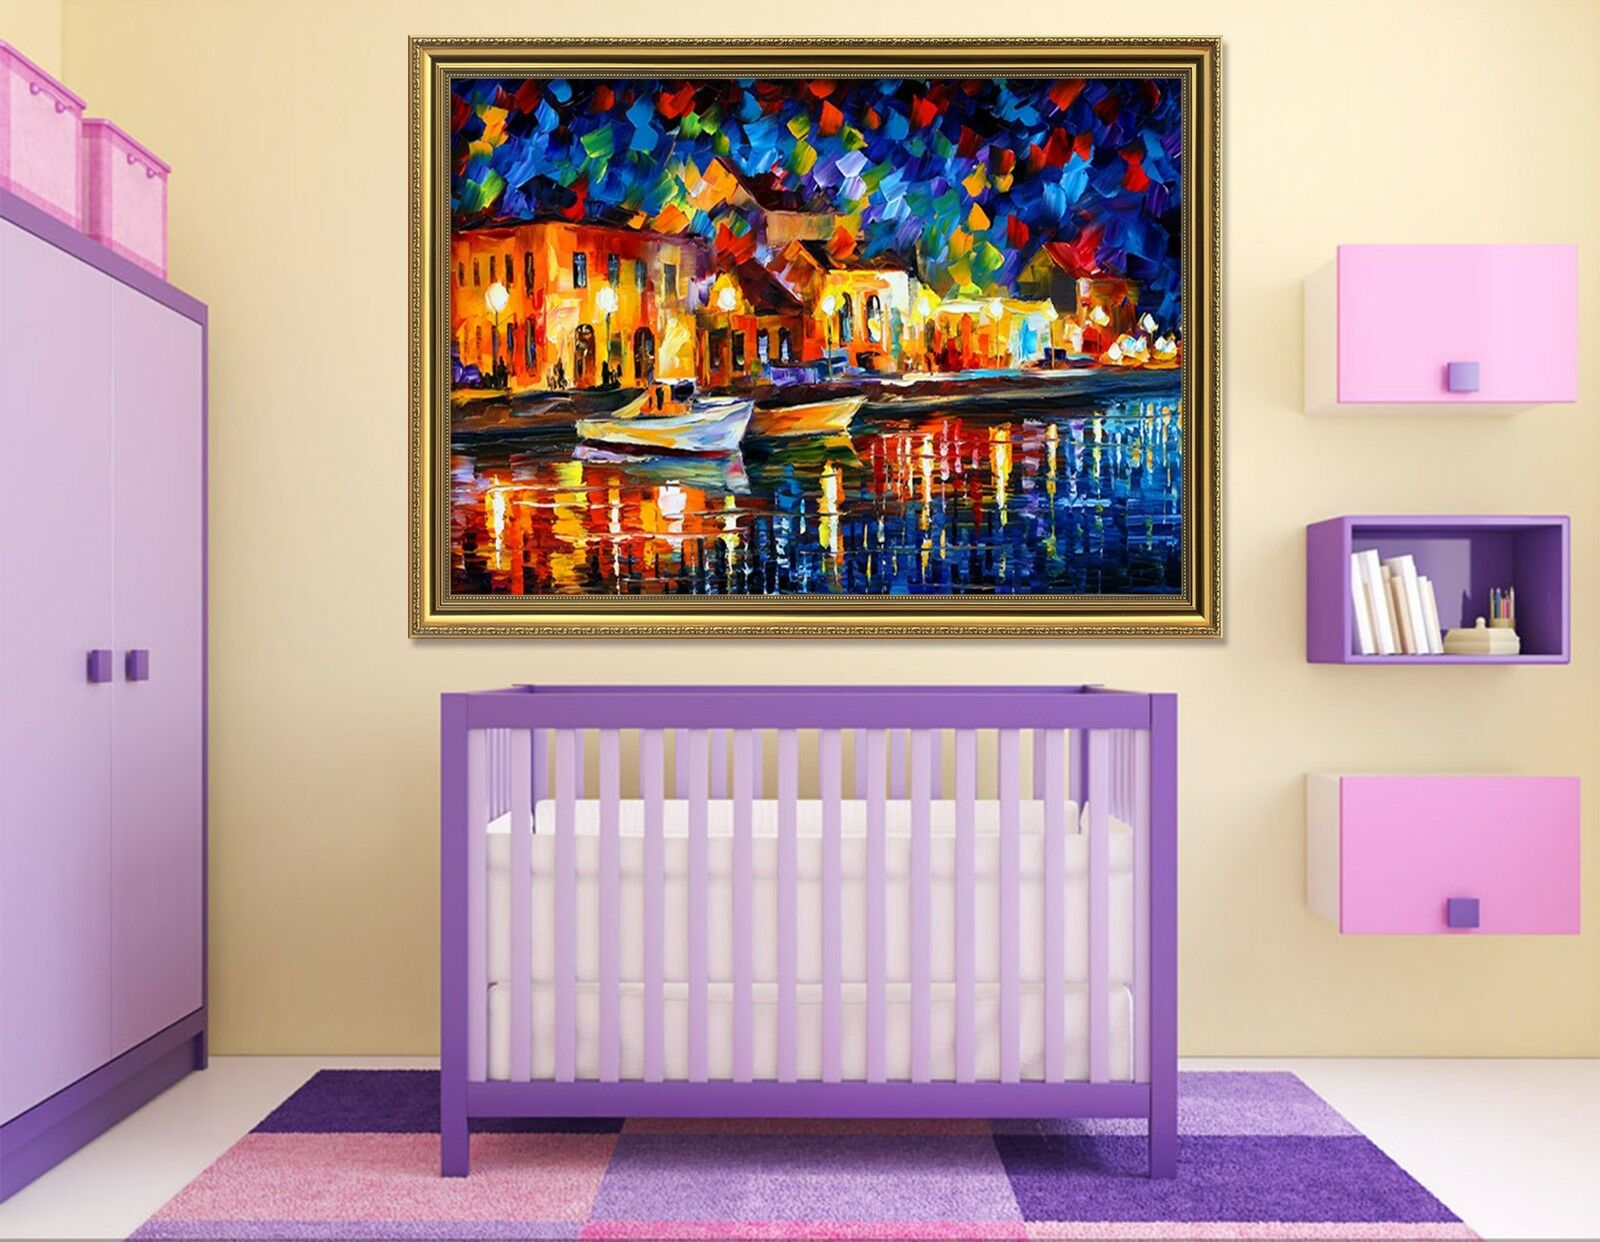 3D Painting Venice View 1 Framed Poster Home Decor Print Painting Art WALLPAPER